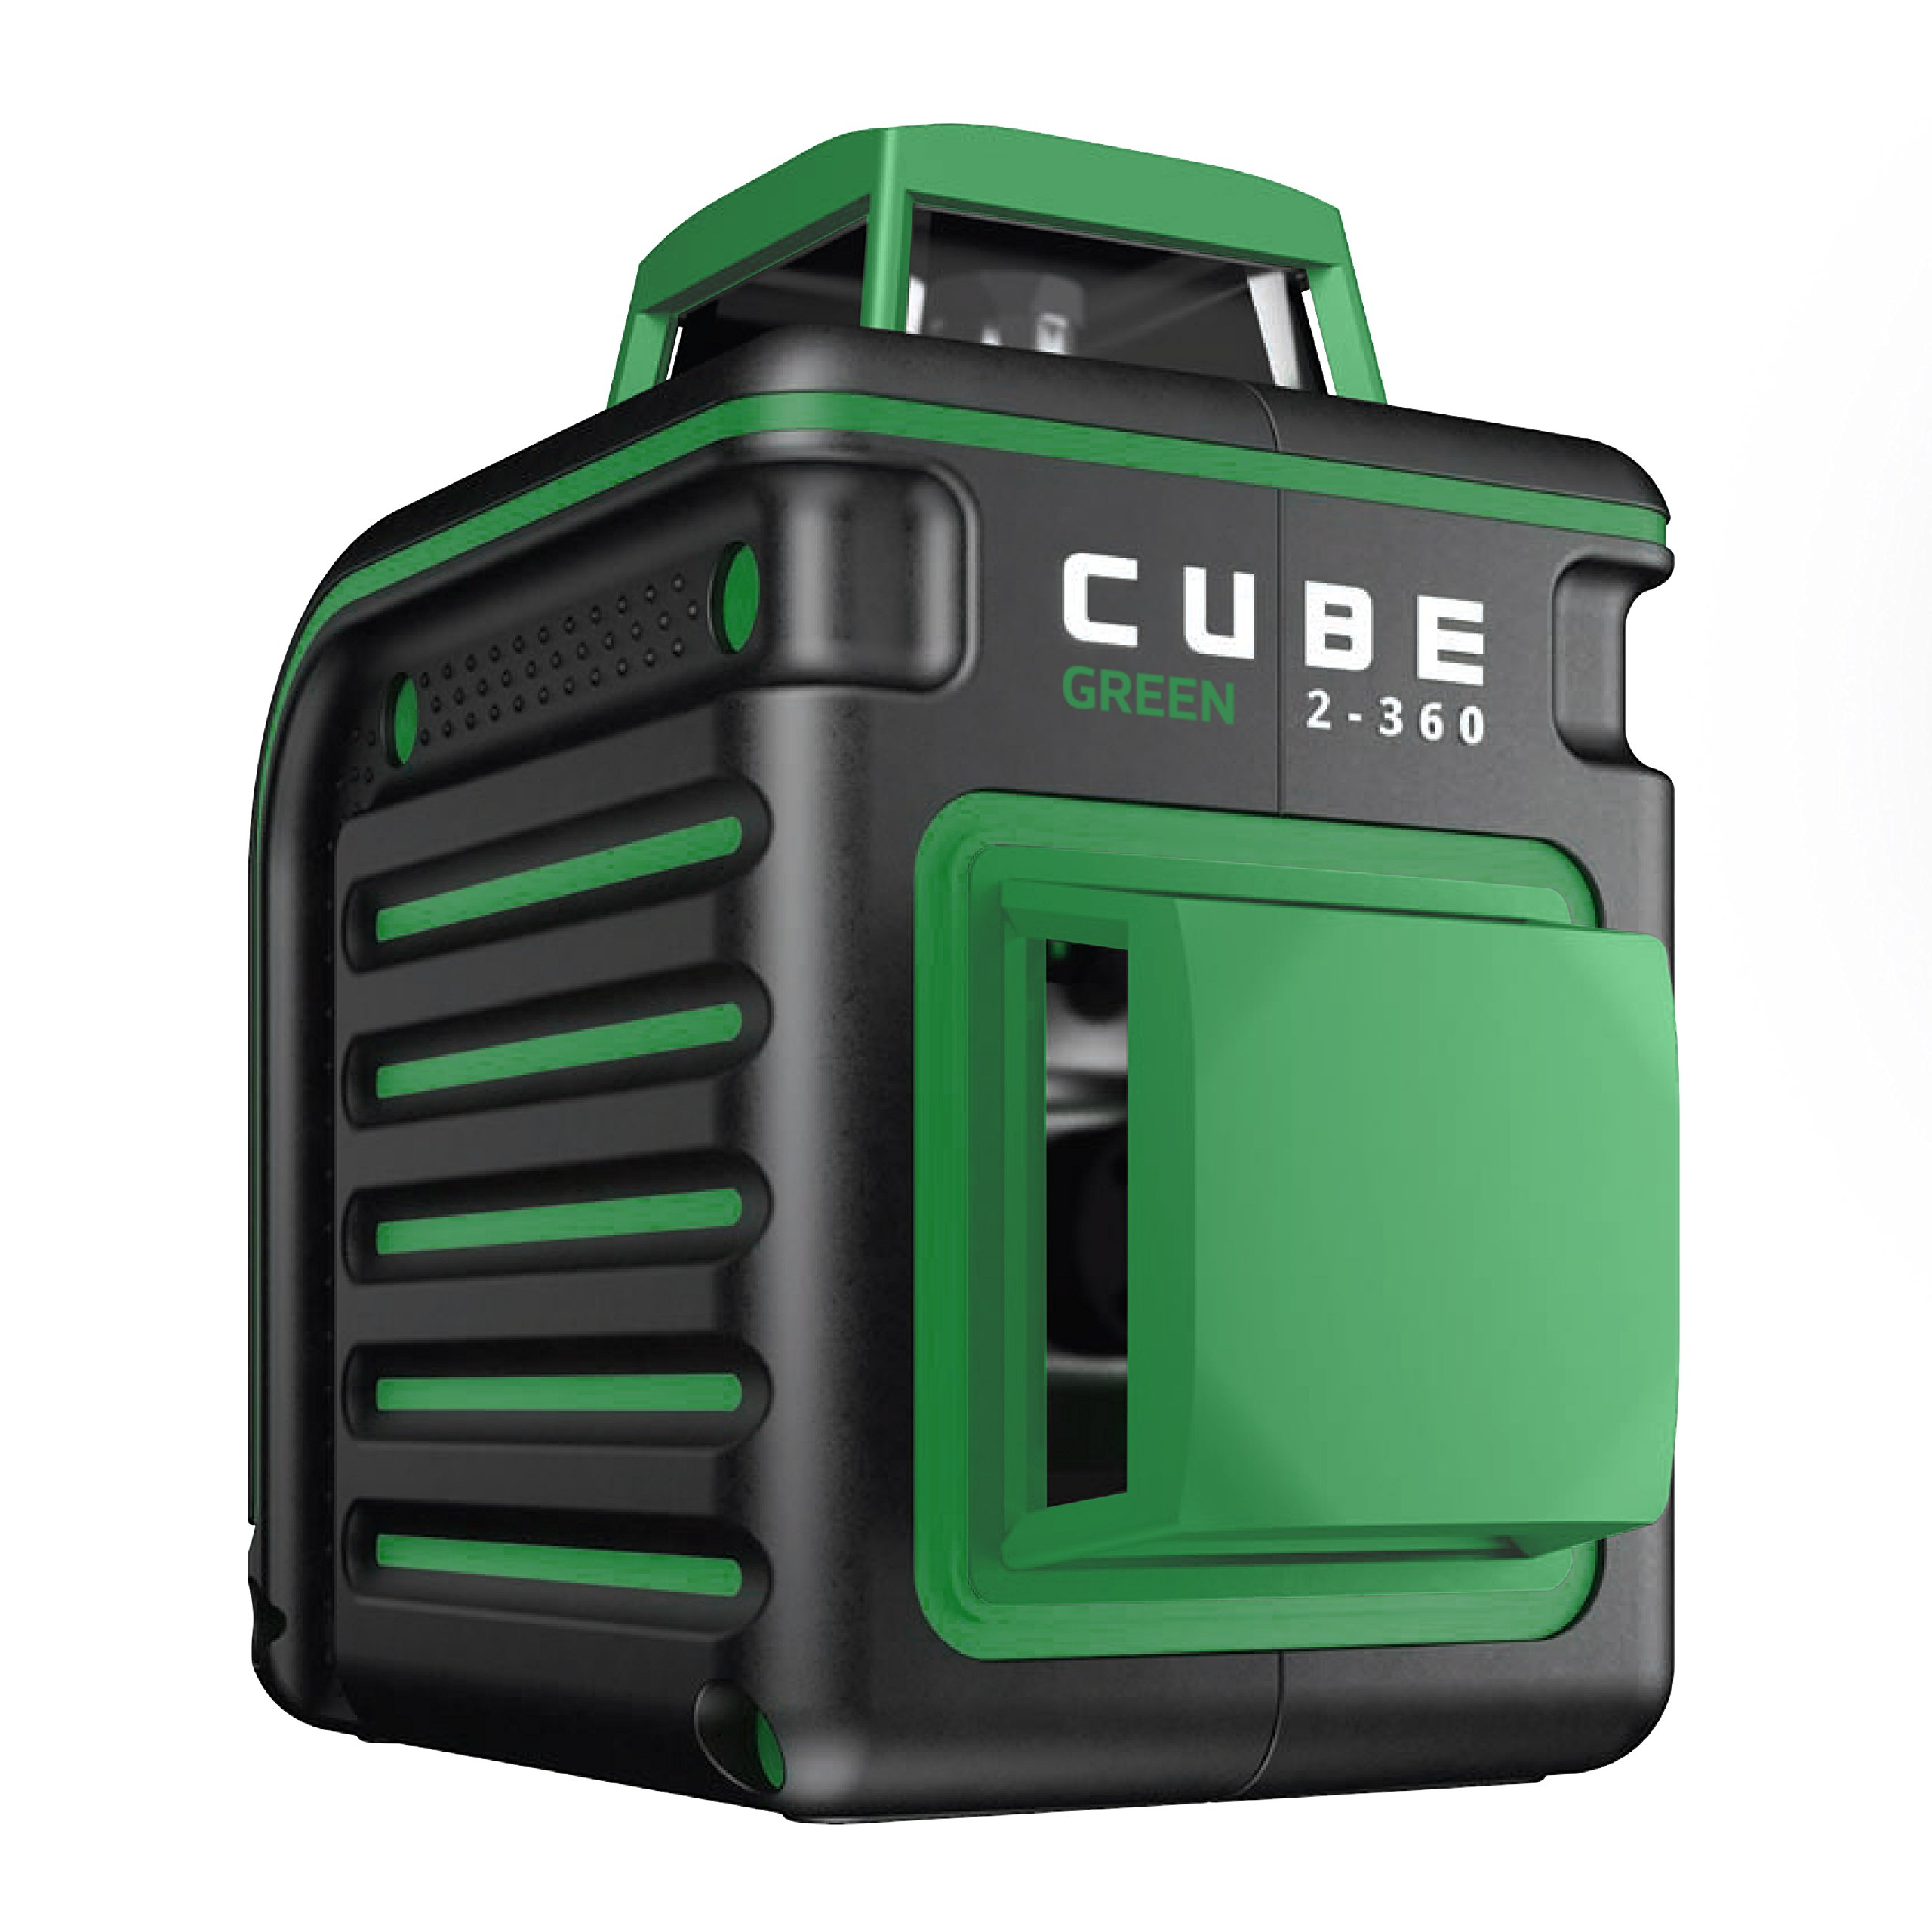 AdirPro Cube 2-360 Self Levelling Green Beam Cross Line Laser Level - Home Edition (Includes: Batteries, Soft Case, Mount, Glasses, 3 AA Batteries, Instructions Manual) by AdirPro